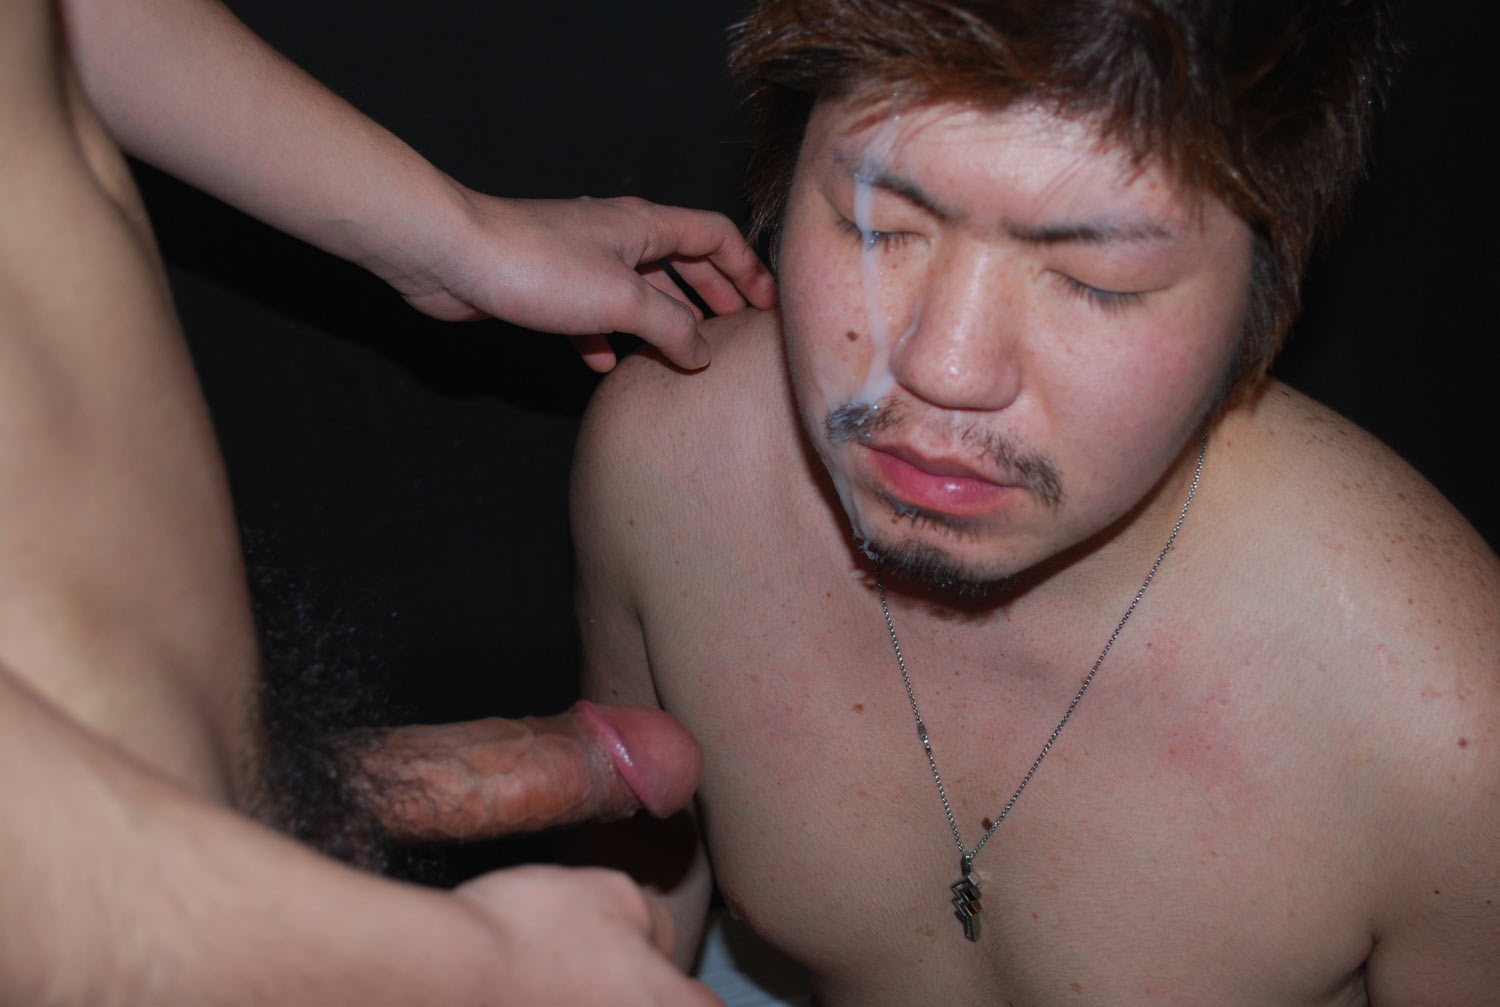 JapanBoyz-Keisuke-and-Shinji-Big-Cock-Asian-Guys-Give-Each-Other-Cum-Facial-Amateur-Gay-Porn-13 Big Cock Asian Boys Give Each Other HUGE Cum Facials